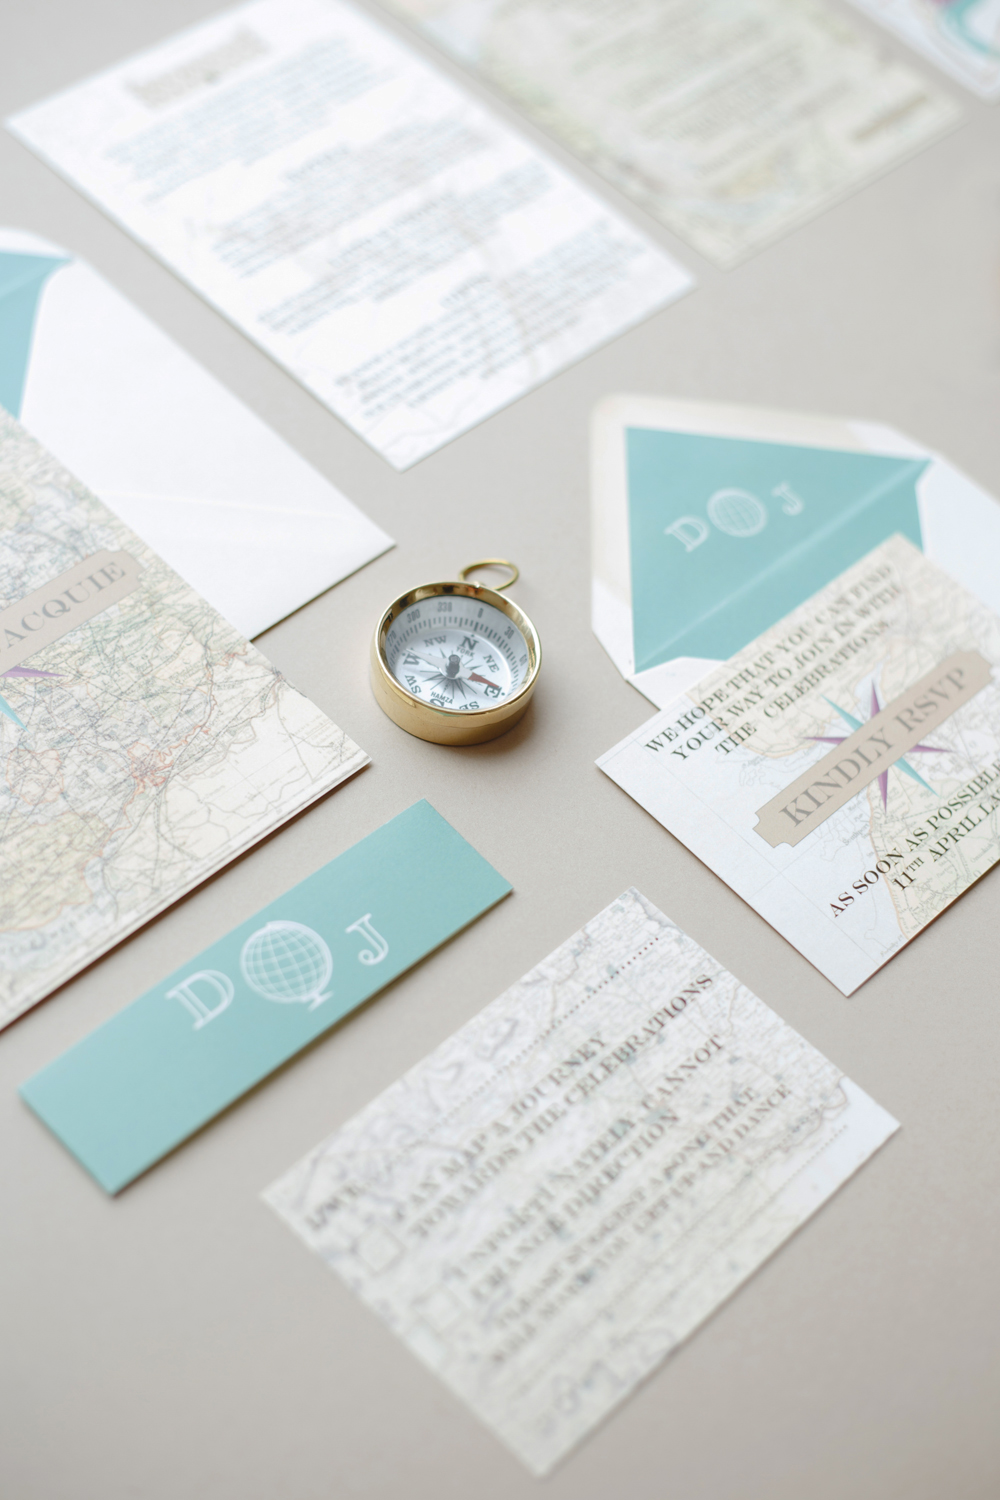 Jacquie and Dawn's bespoke map wedding stationery for their Syon House wedding